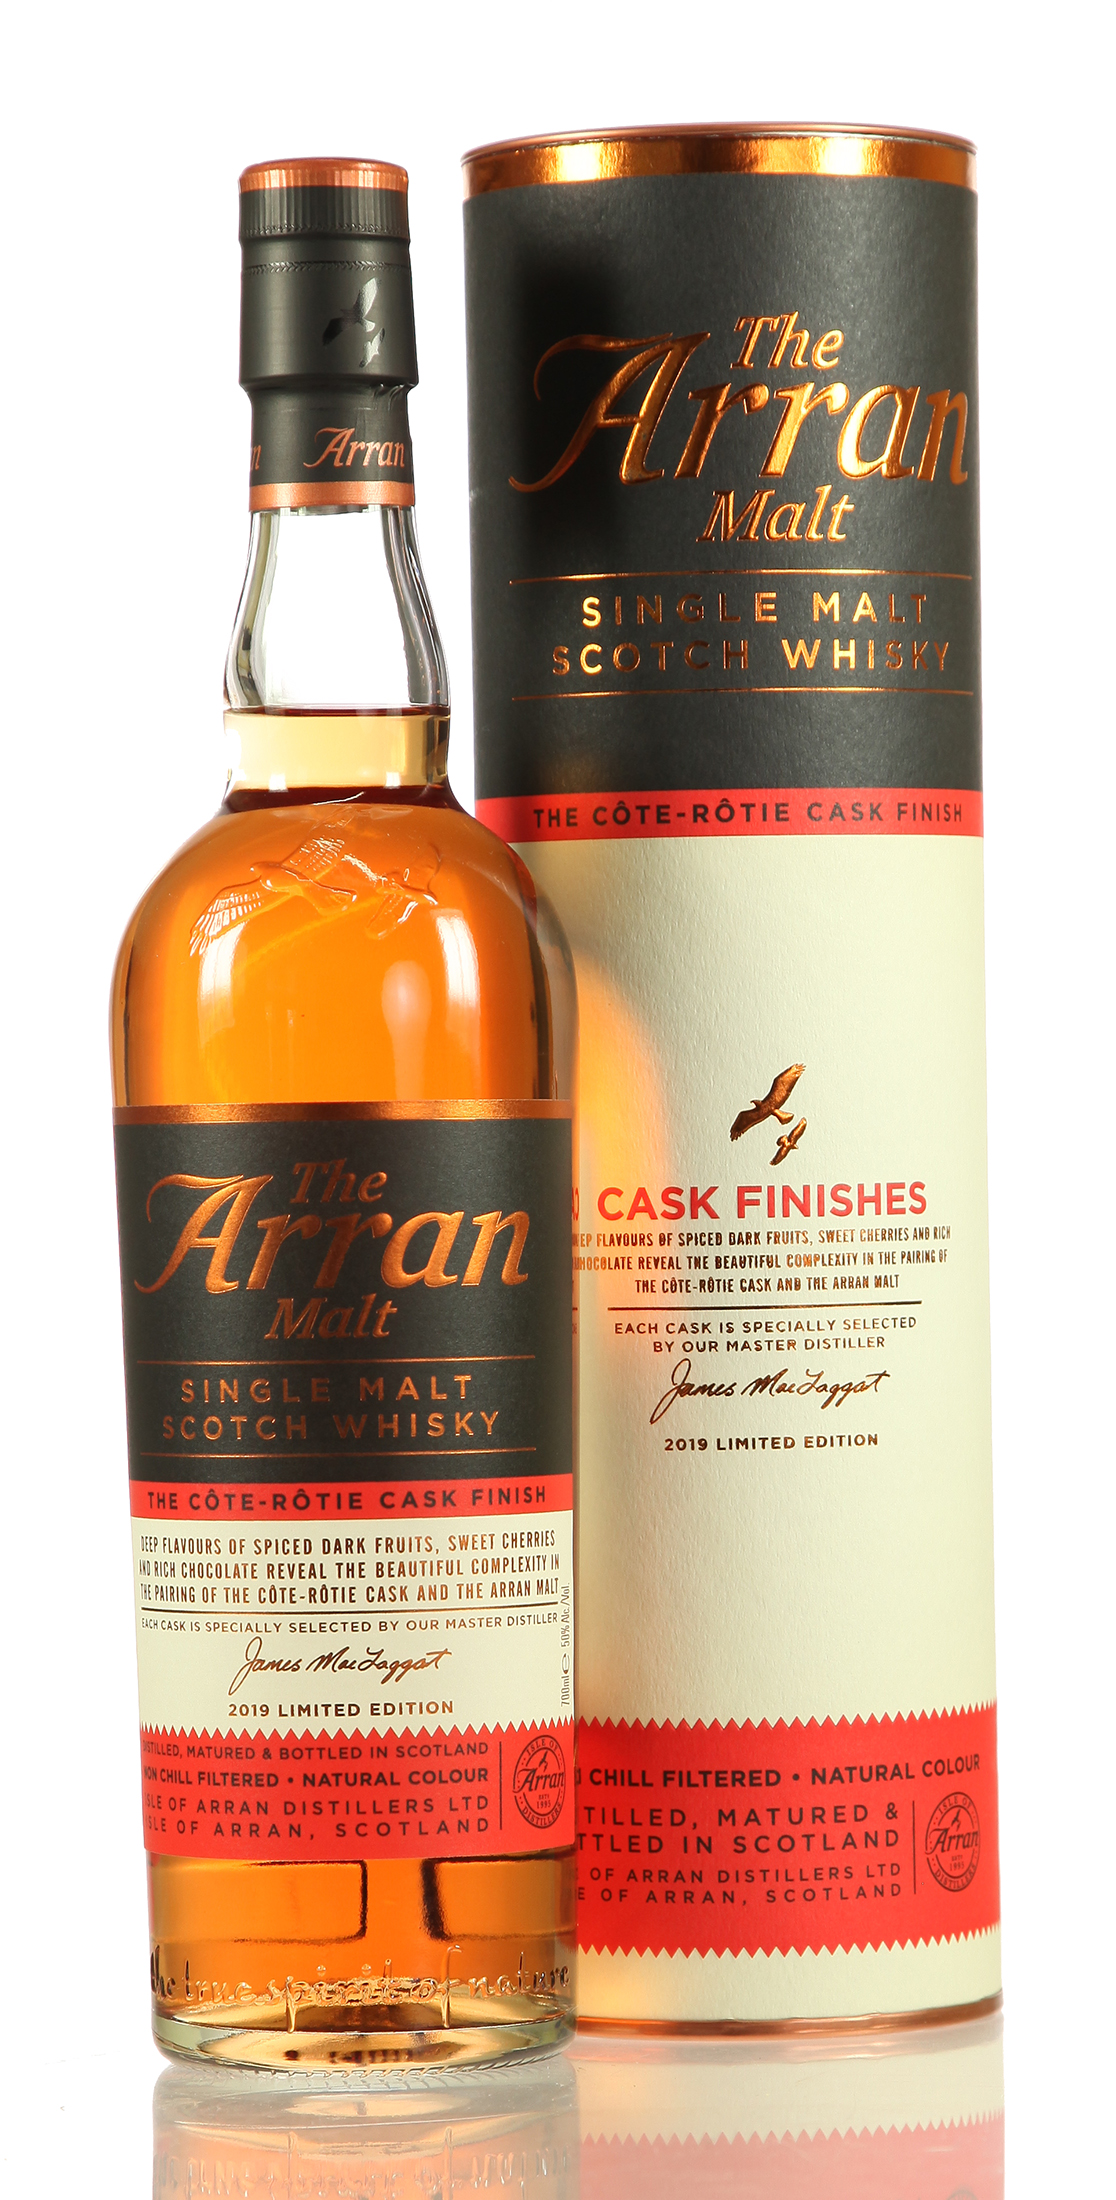 Arran Côte-Rôtie Cask Finish